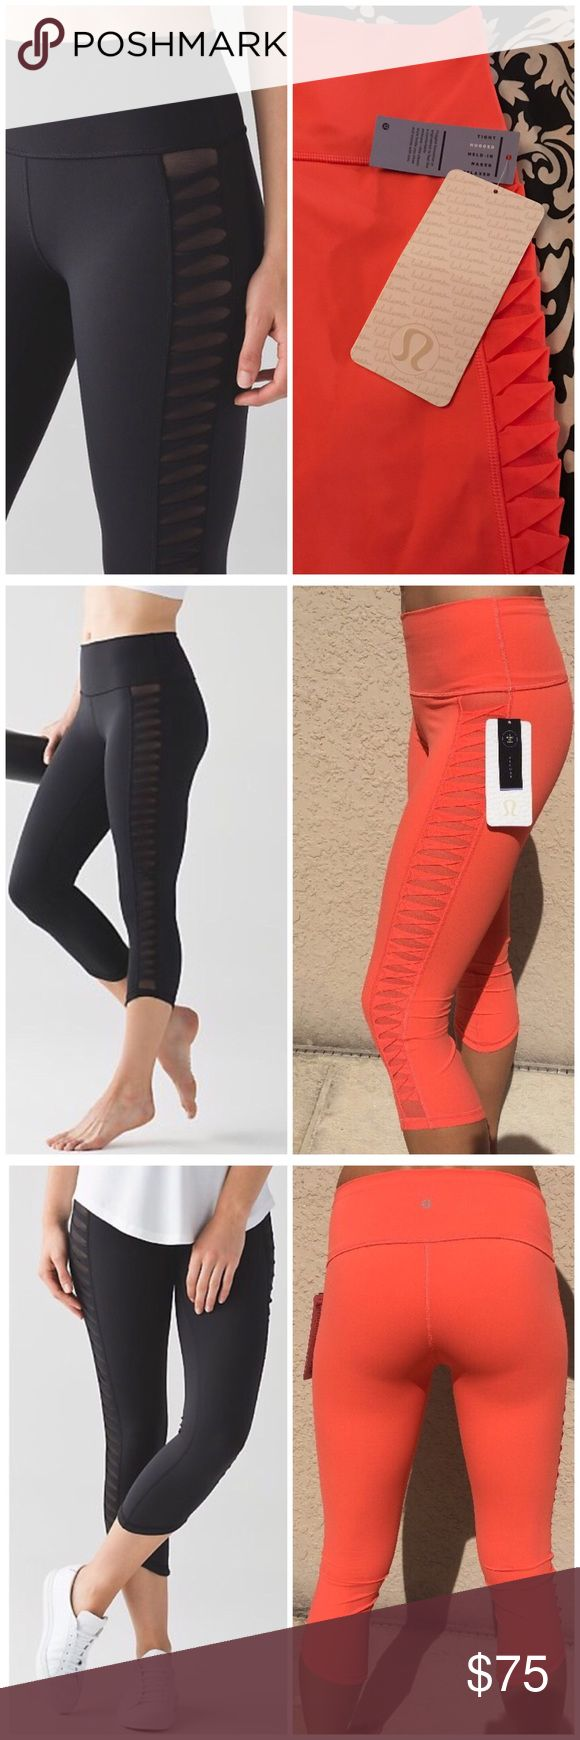 NWT Coral LULULEMON Sunshine Salutation Crop Coral color. Black stock photos are for reference only. Color is called Cape Red but is more coral than red. lululemon athletica Pants Track Pants & Joggers